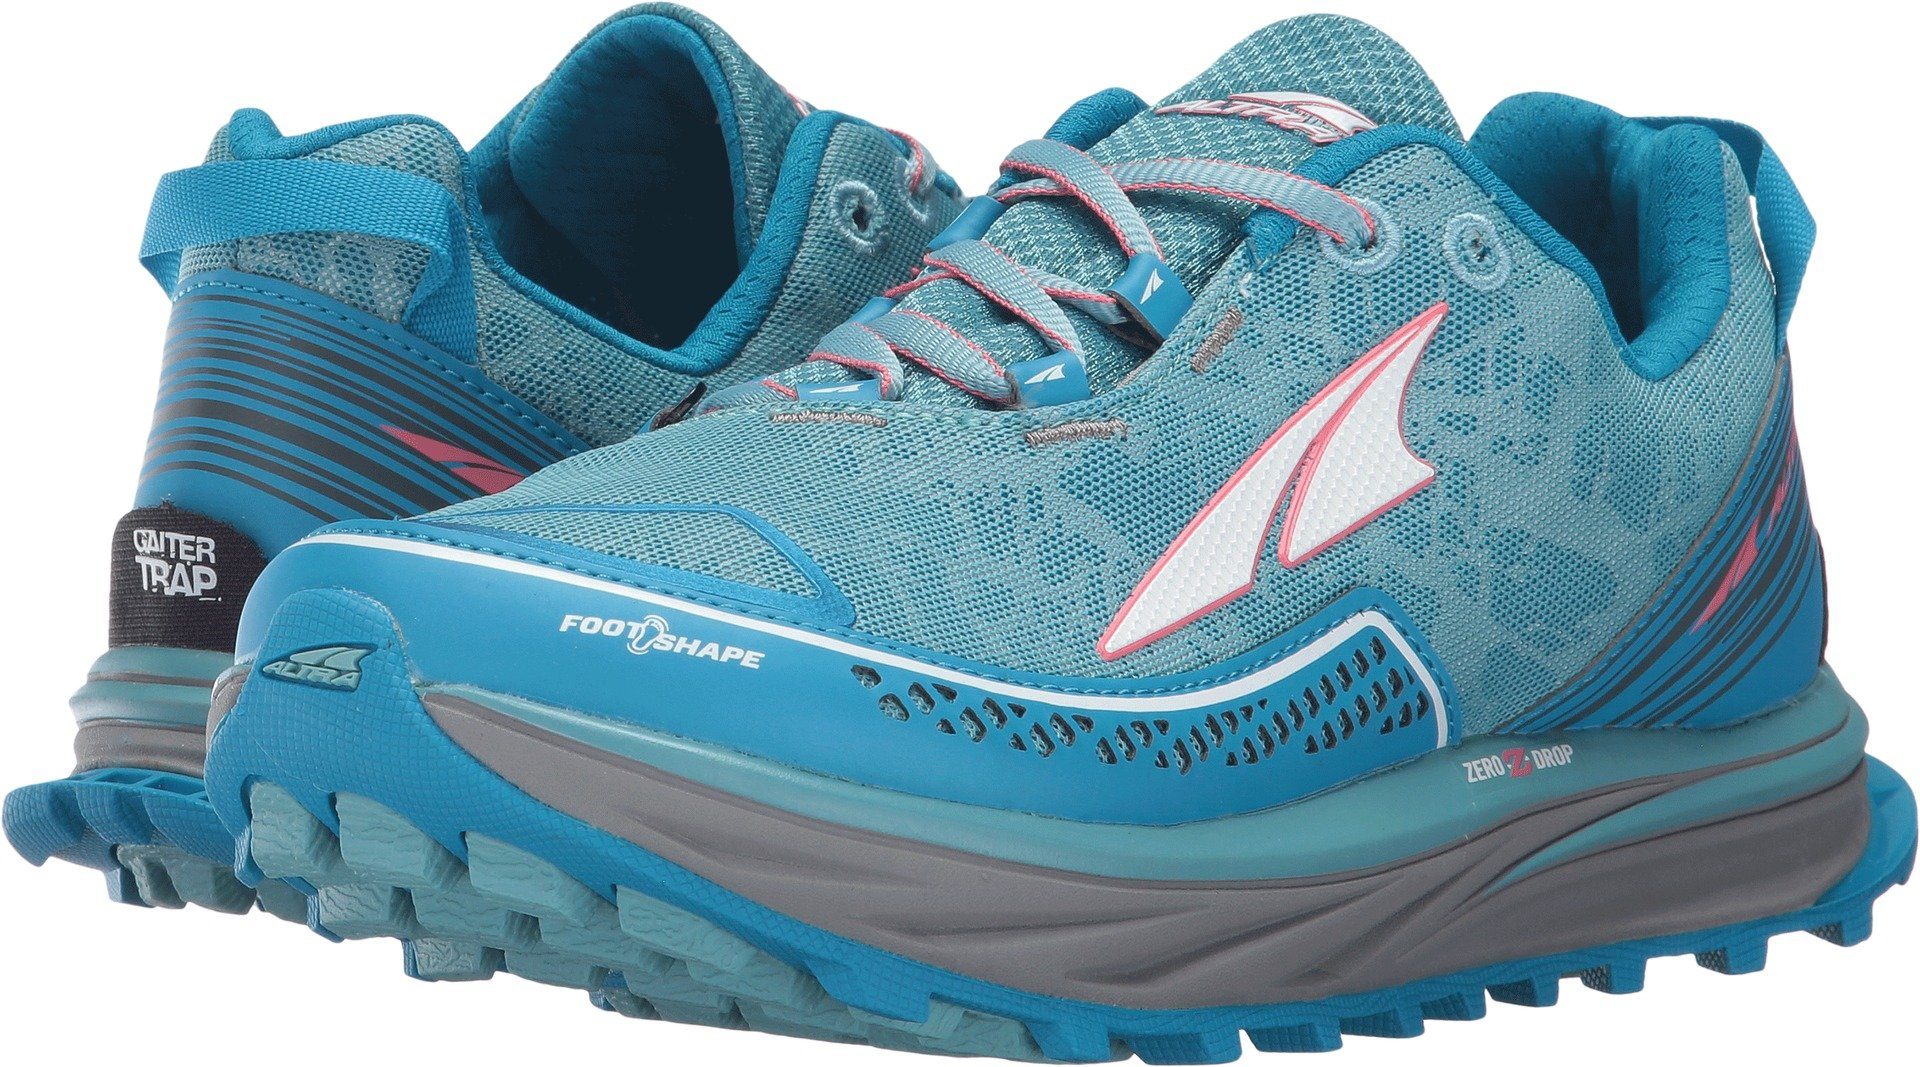 Altra Timp Trail Running Shoes - Womens Blue 5.5